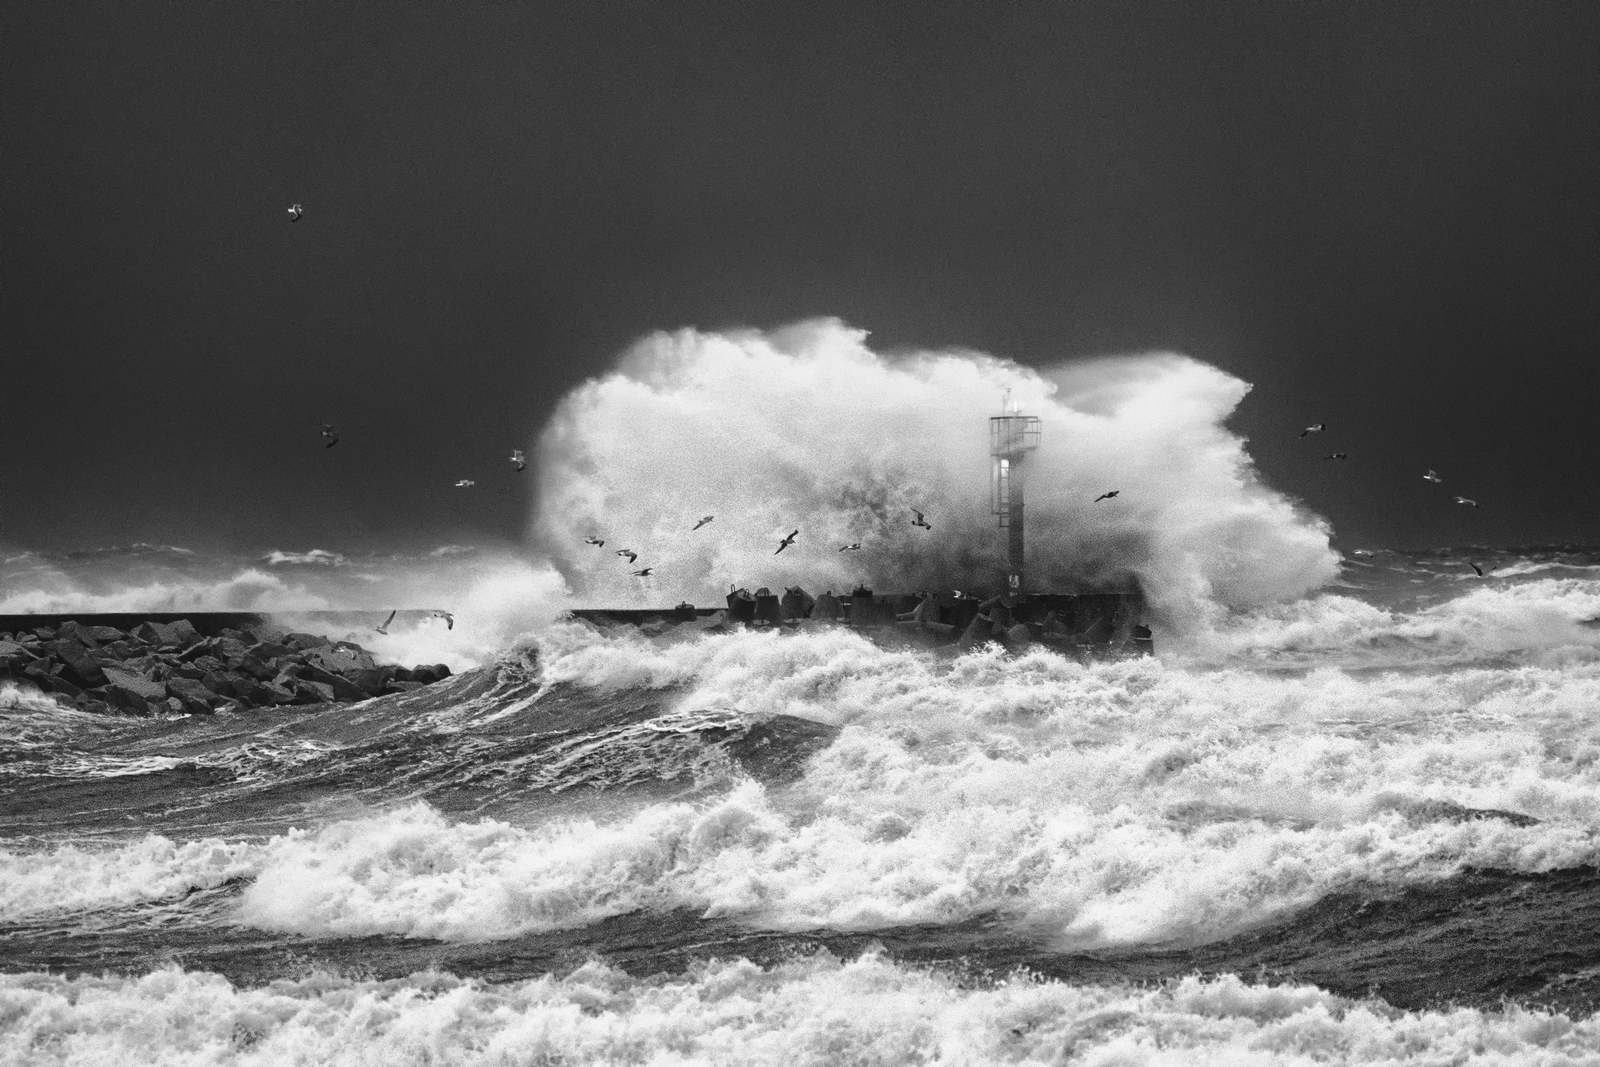 """Barbara"" was only a prelude – At the beginning of January 2017 Low Front ""Alex"" was making havoc. Strong North wind was pushing a lot of water inside the harbours causing loss. Waves were more than 5 meters. Fuji XPro-2, XF 50-140, 1/125s, f4, ISO 4000"